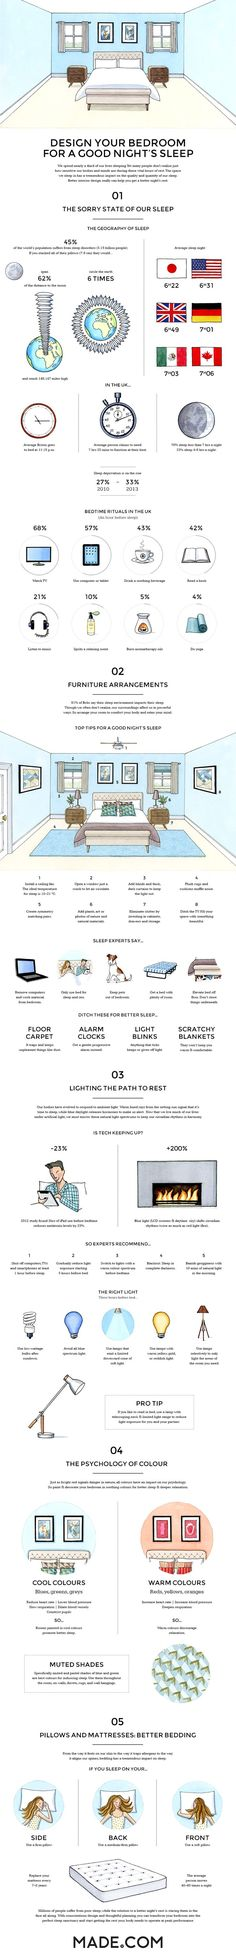 You know what totally sucks? Getting a crappy night of sleep. Luckily, this useful infographic by MADE is filled with life hacks that will vastly improve your bedtime routine. Take five minutes of your day to read through these helpful tips, and your life will change for the better. get better sleep, sleeping tips